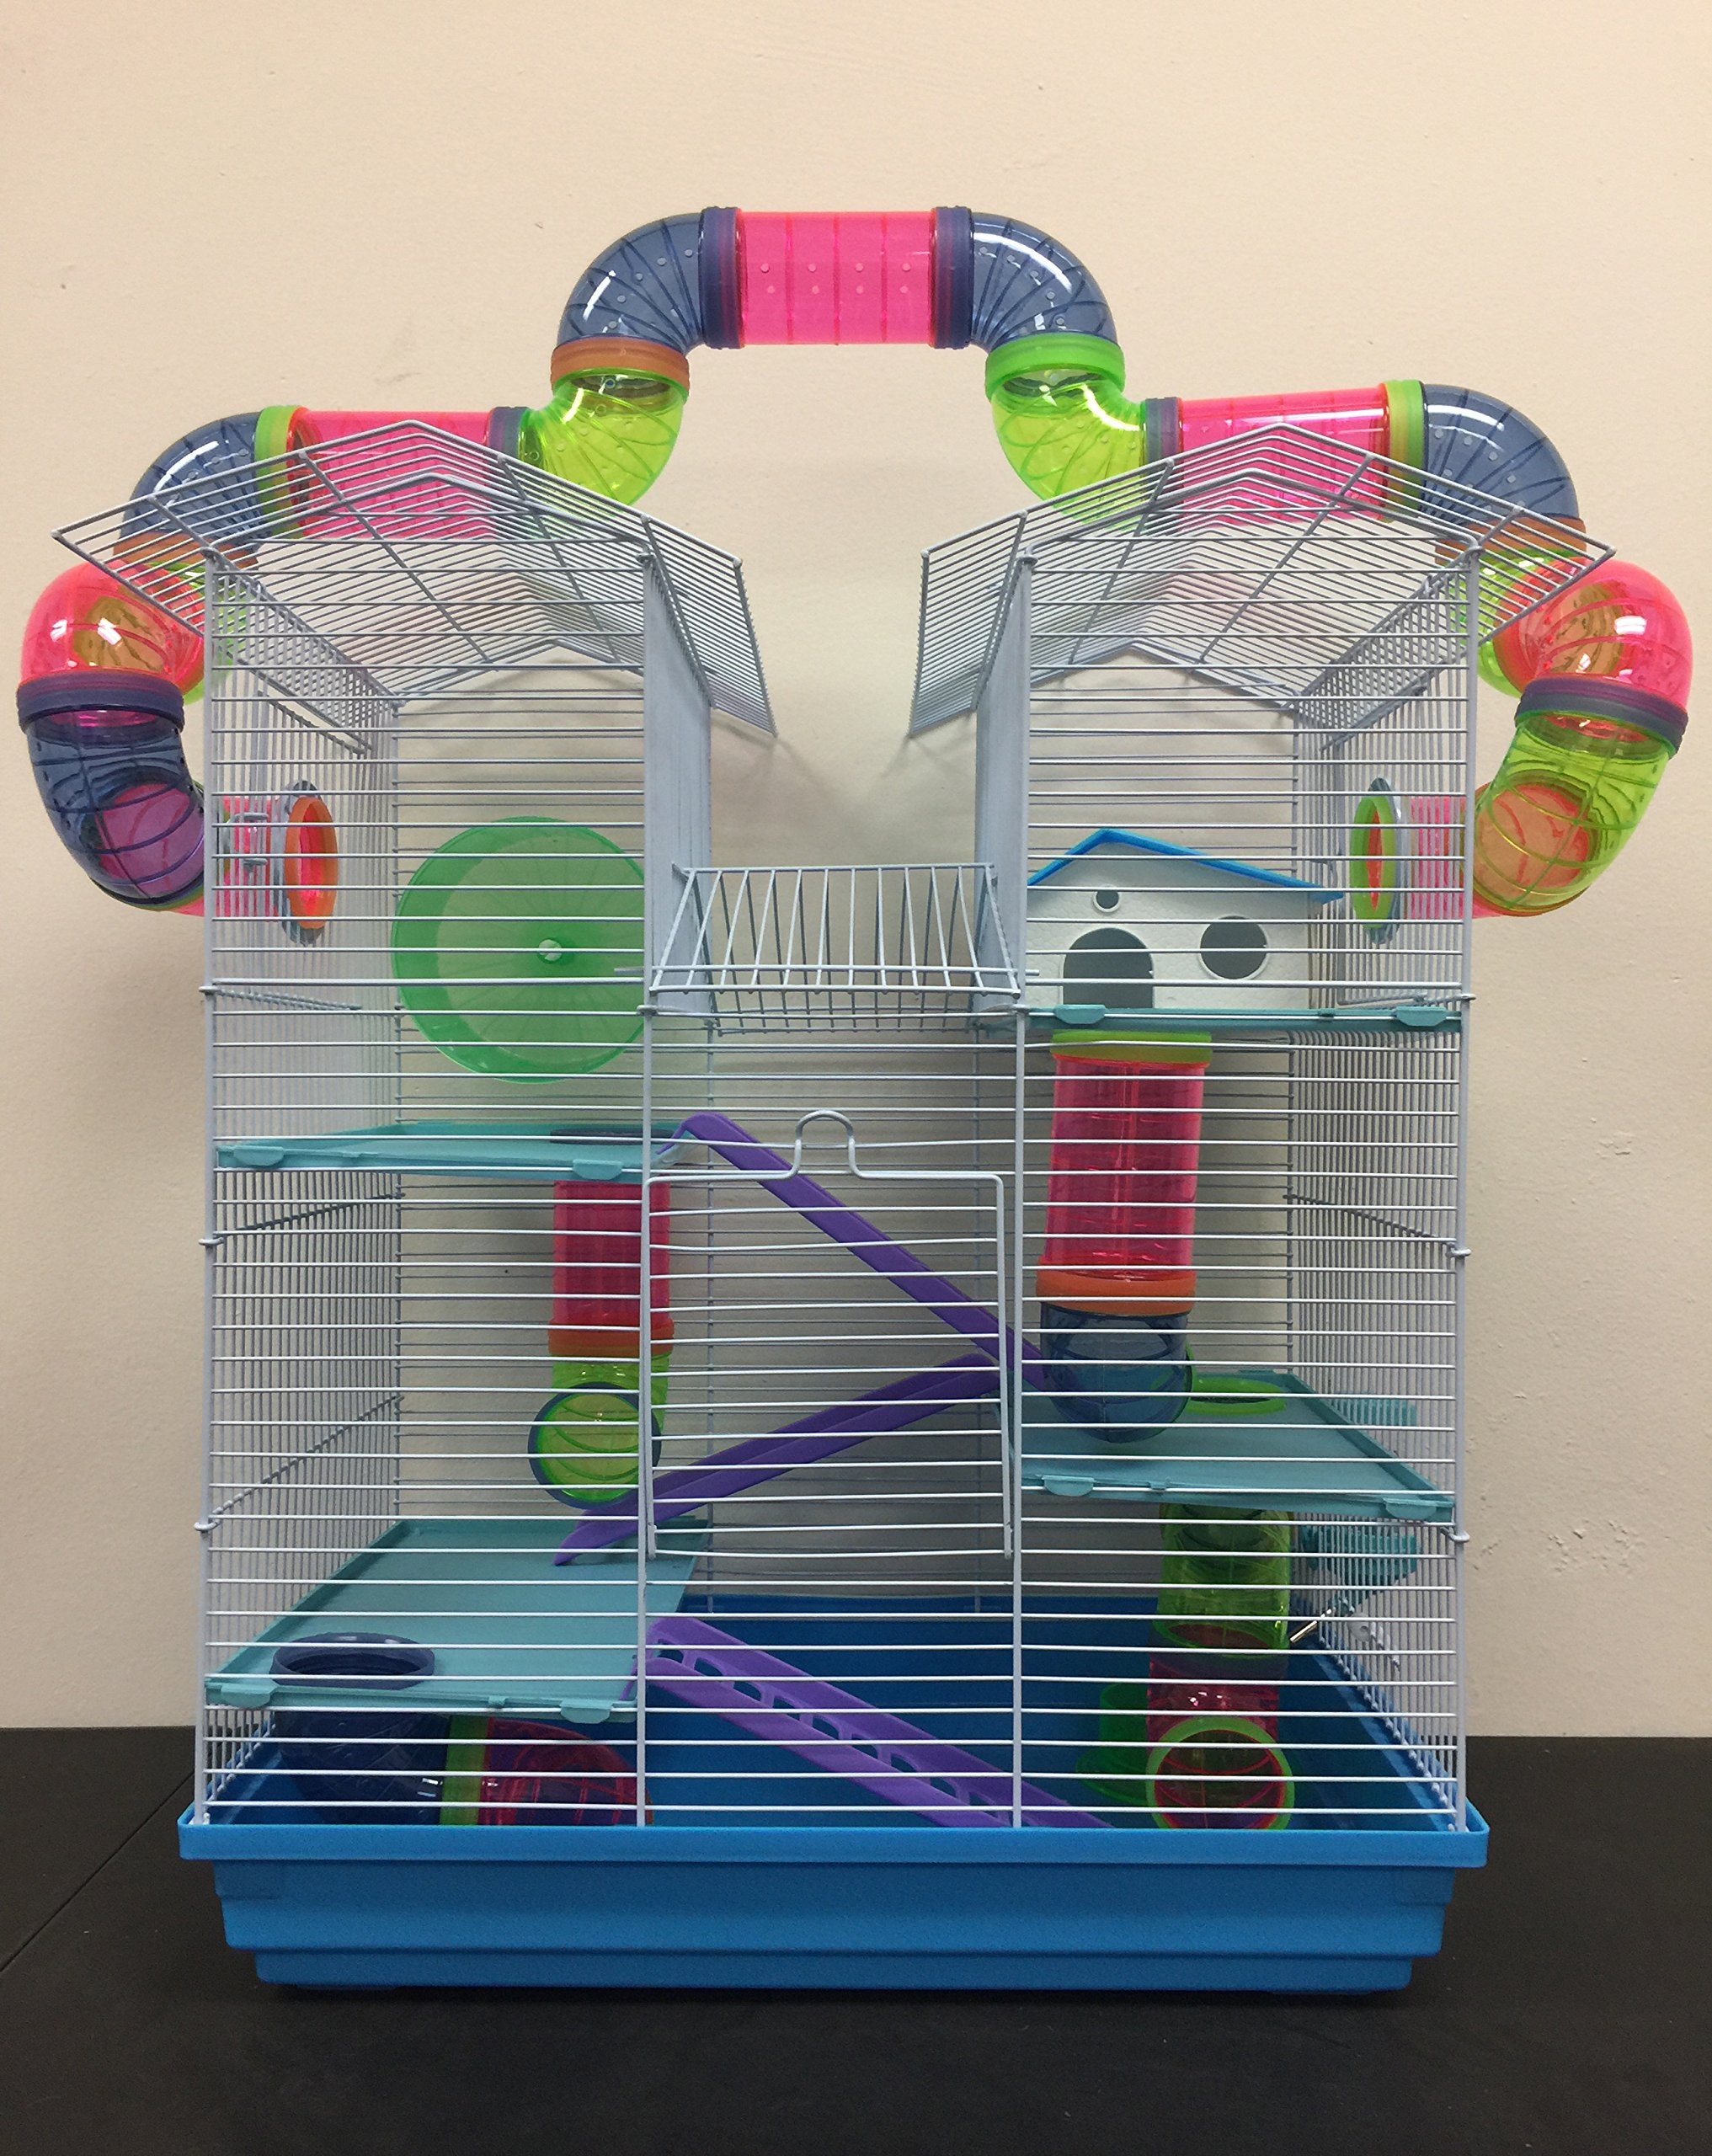 New Large Twin Tower Habitat Hamster Rodent Gerbils Mouse Mice Small Animal Cage (with Top Crossing Tube) by Mcage